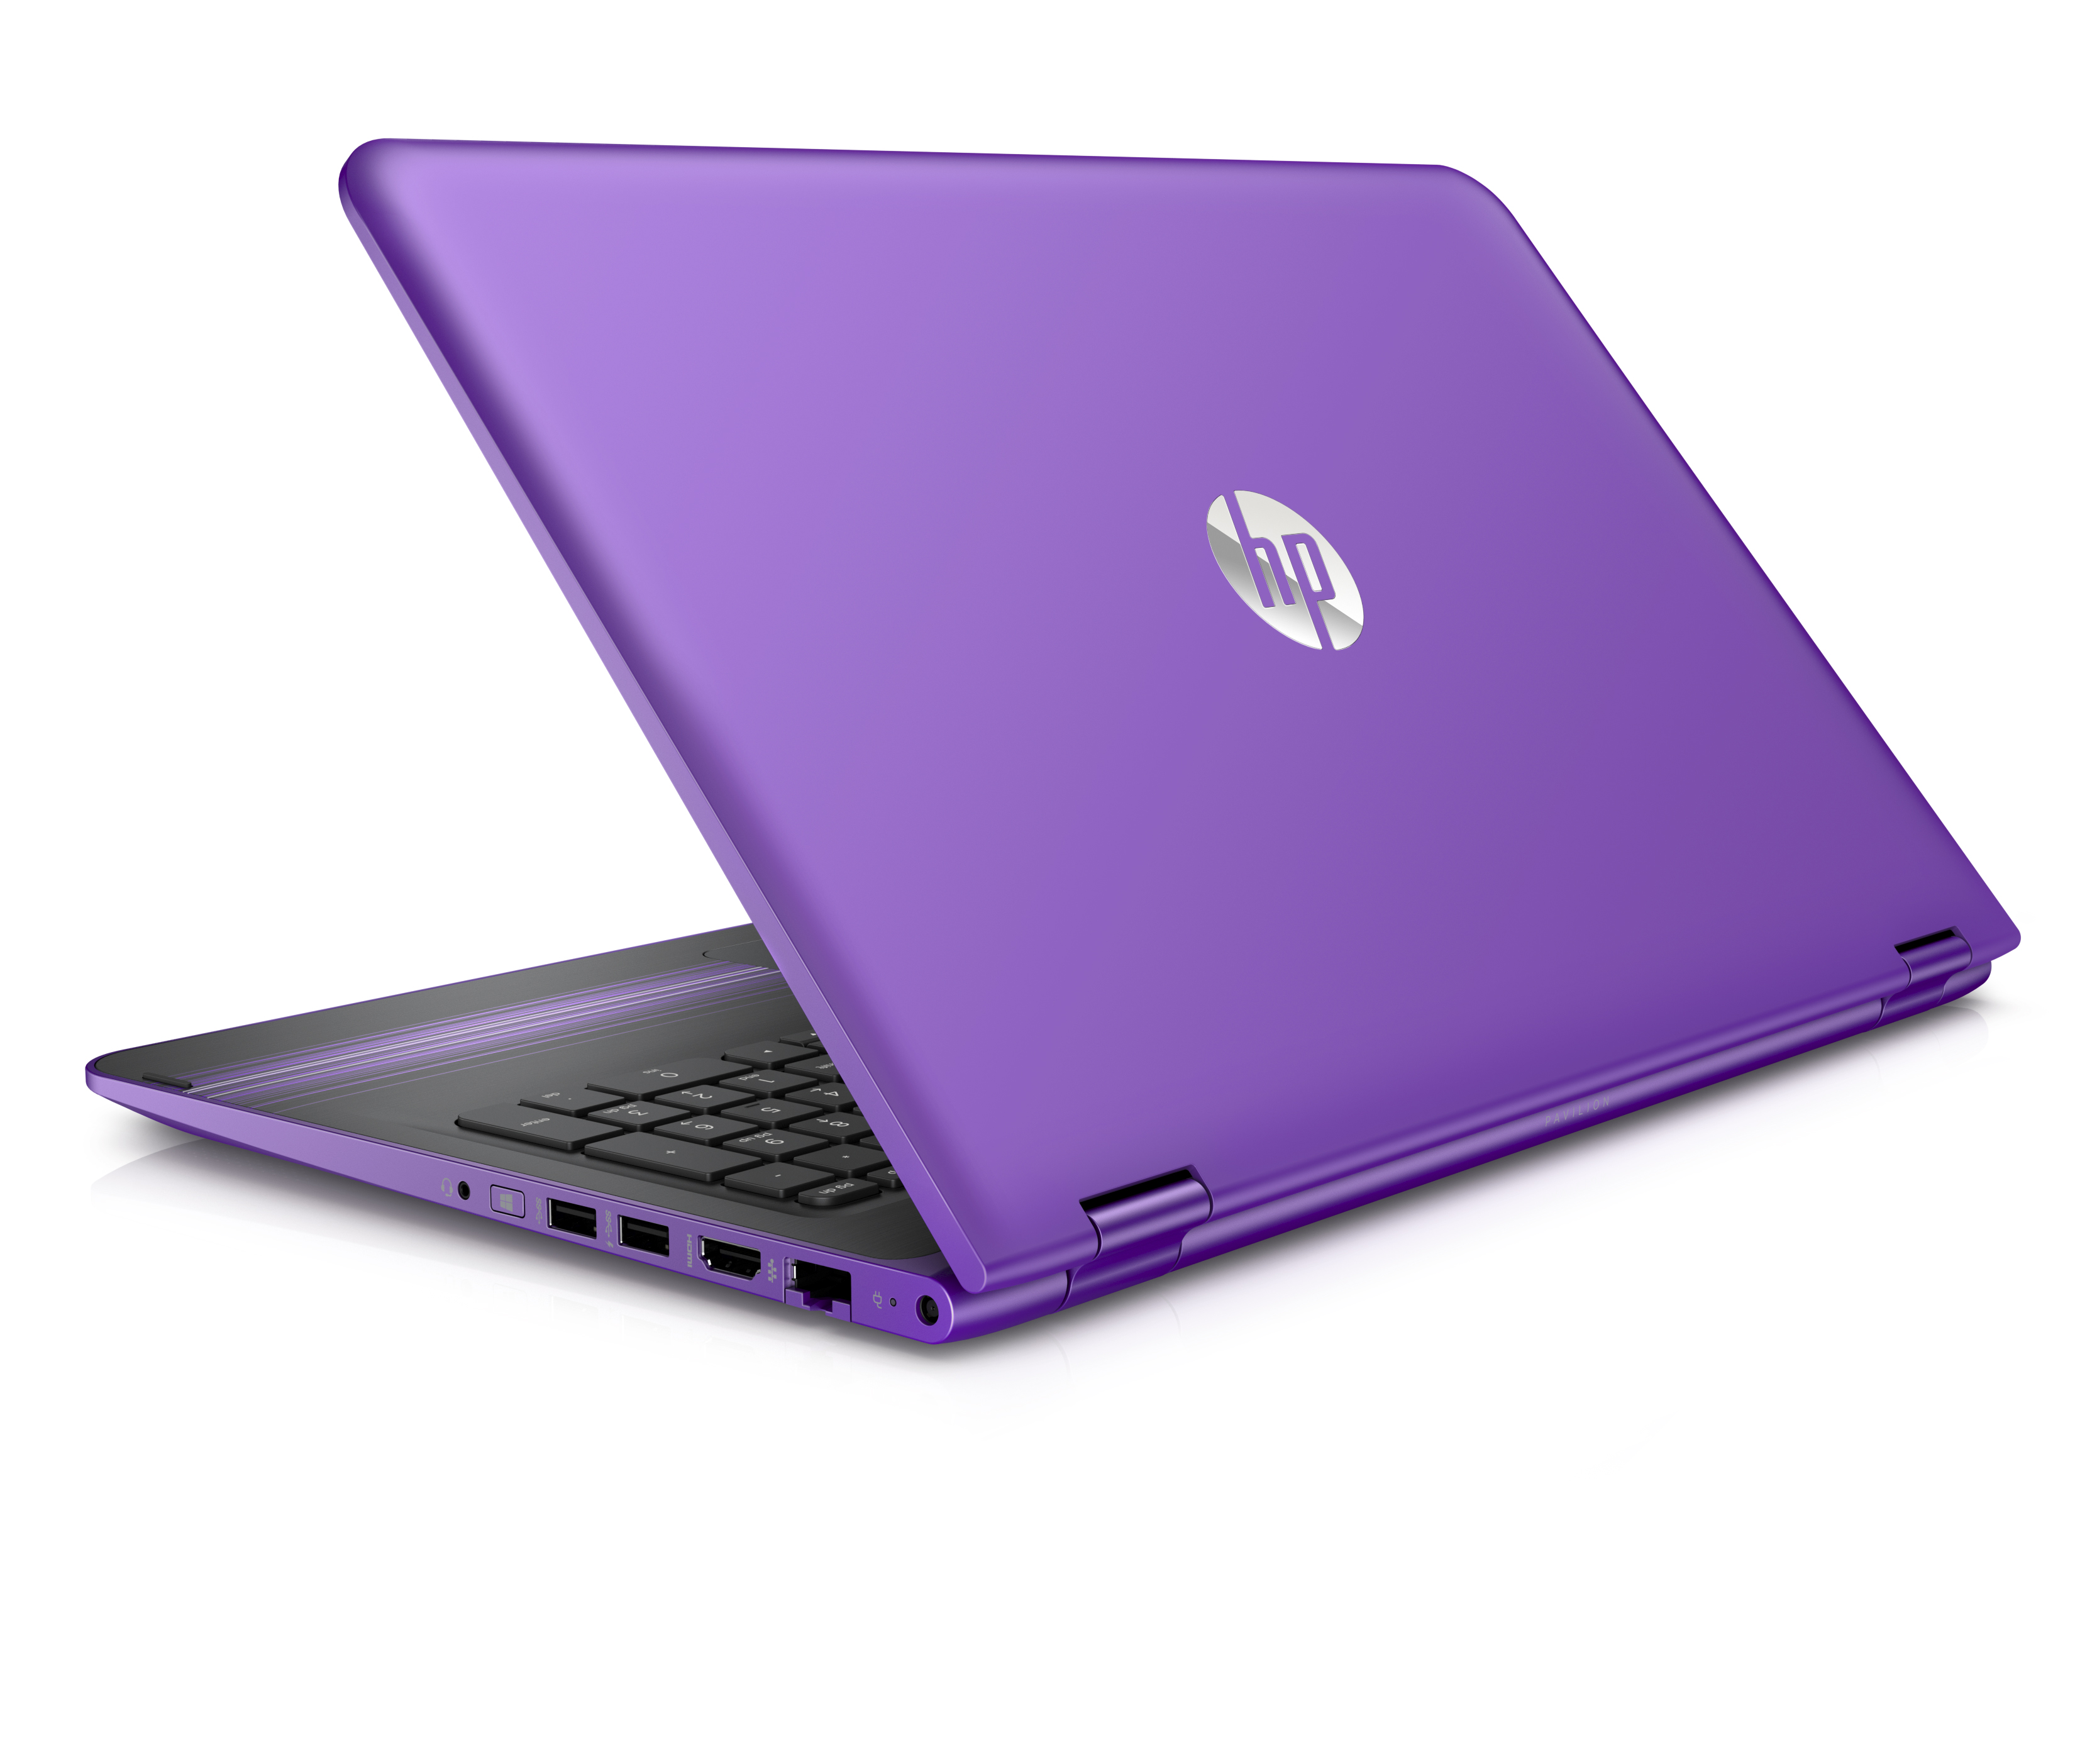 The 15.6 inch Pavilion x360 in Sport Purple is rather fetching.